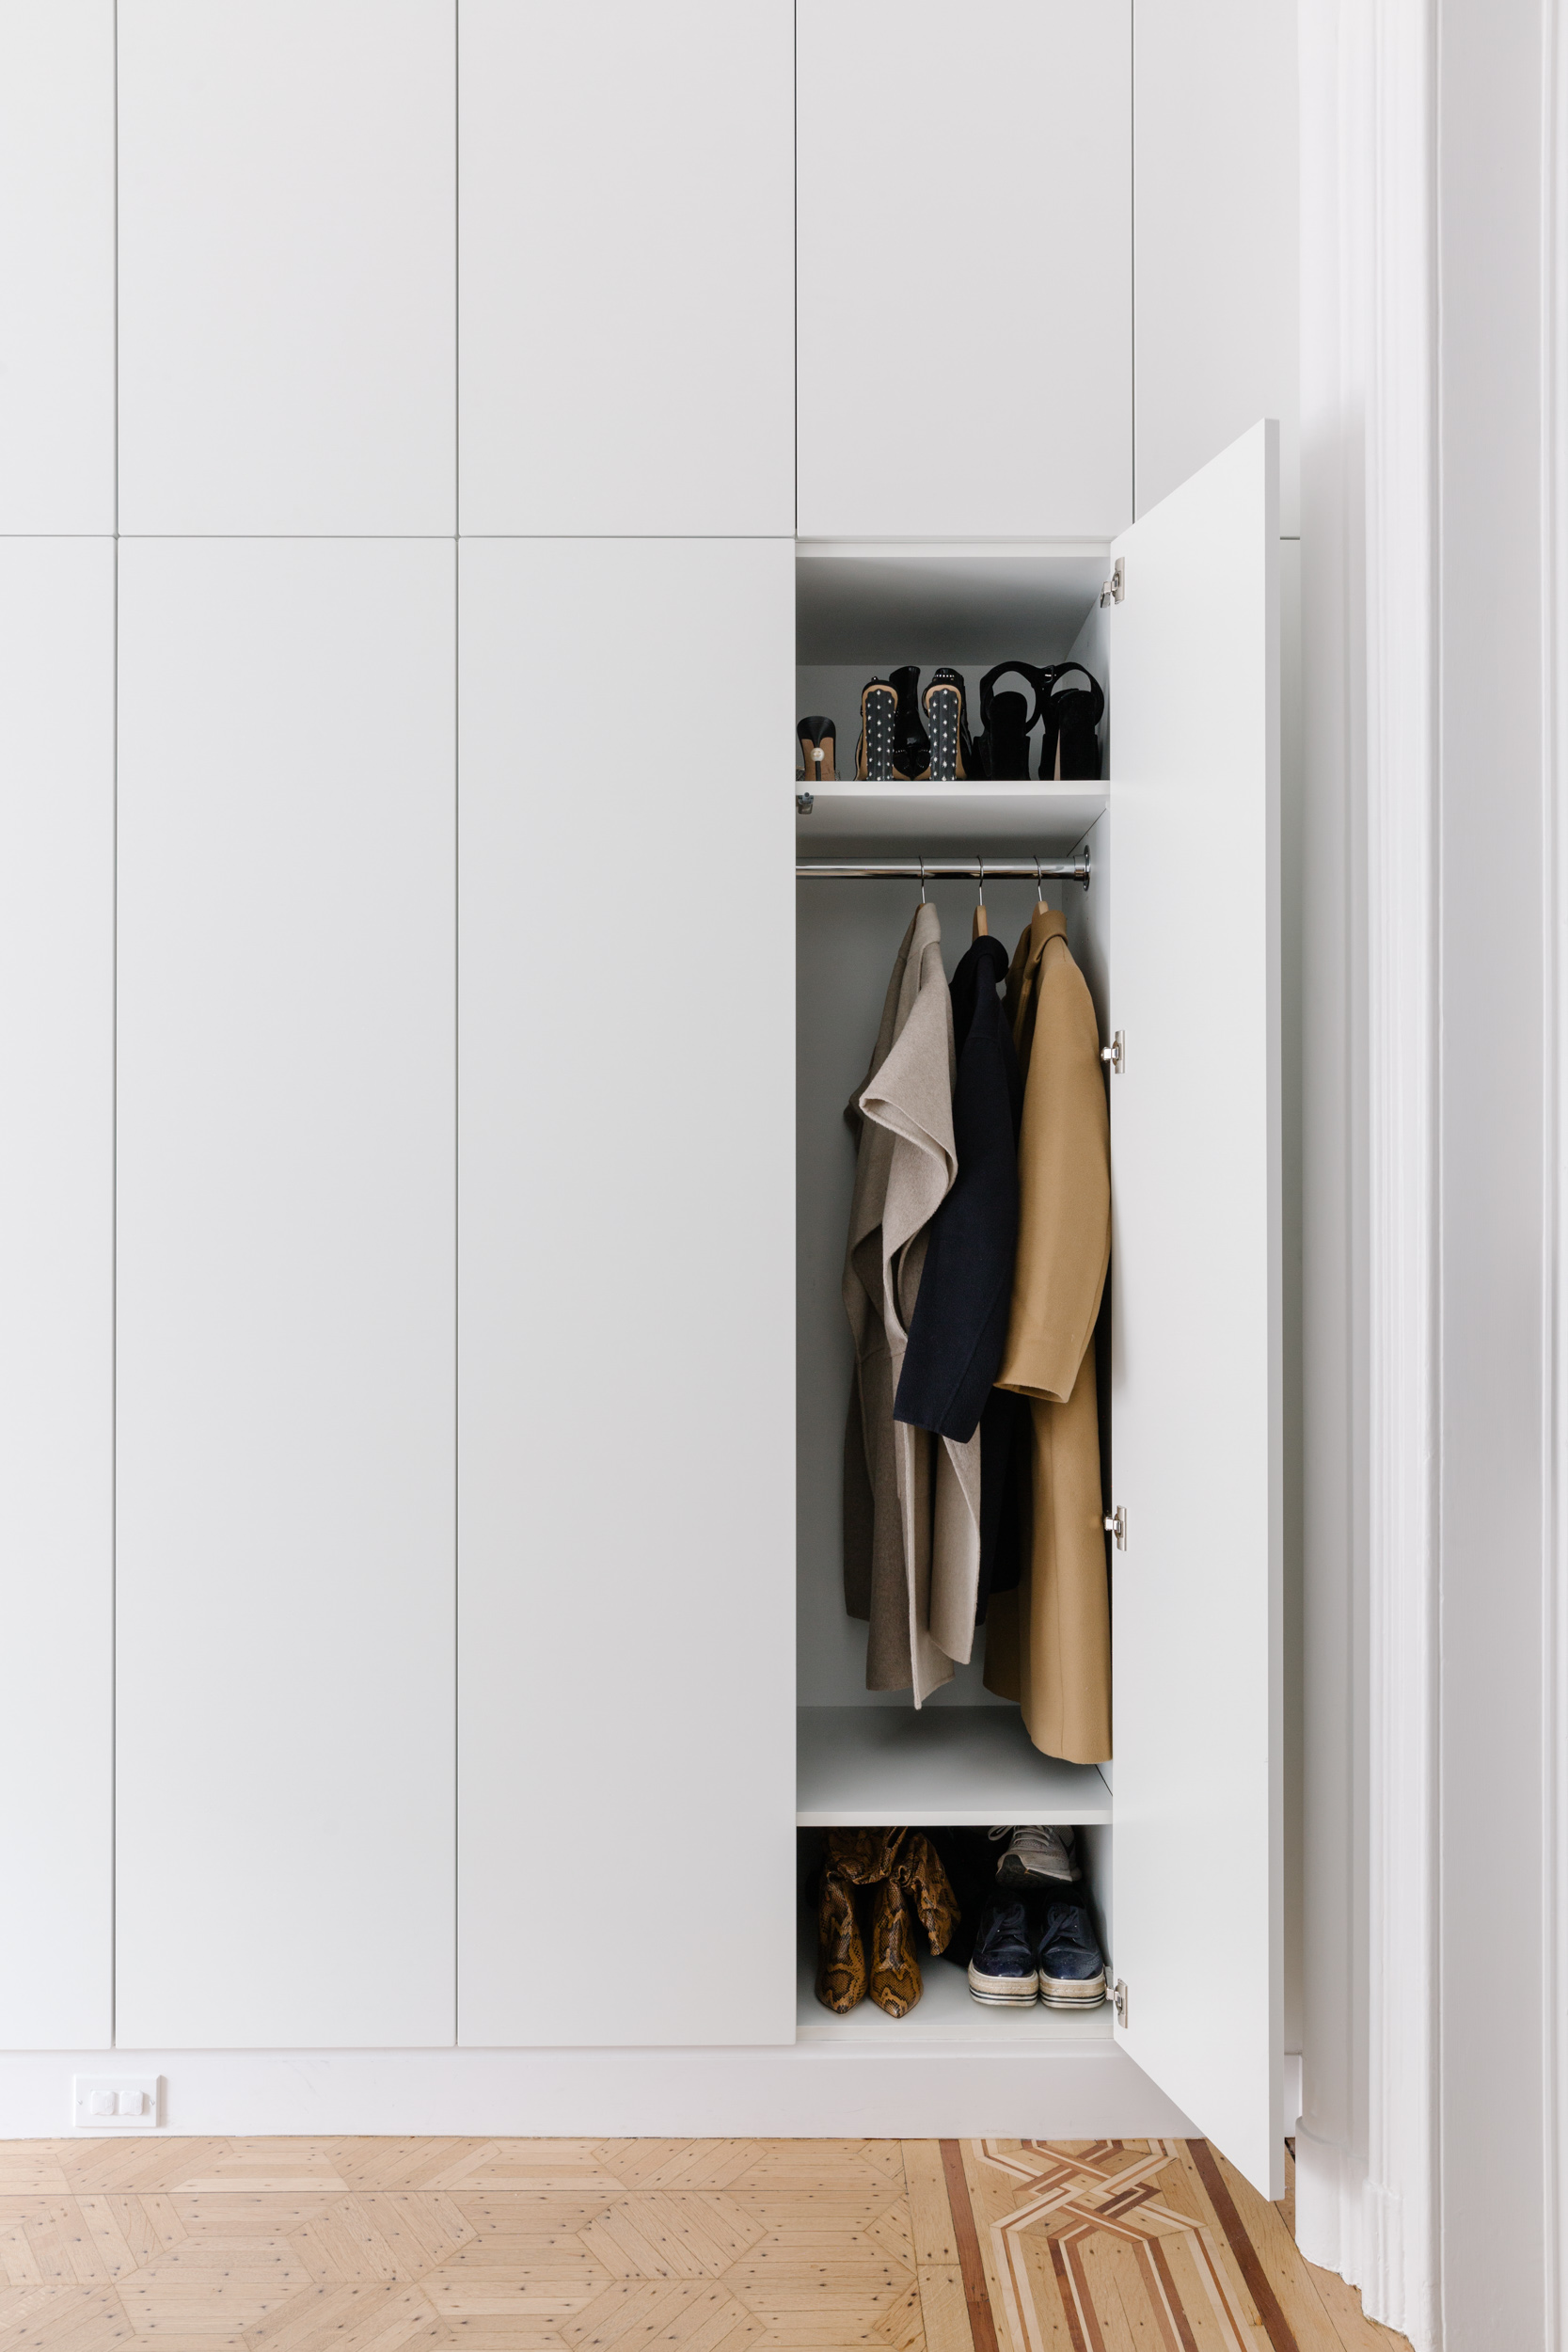 """""""The units are beautiful and are an upgrade from Ikea. They shipped quickly, so there wasn't a long lead time,"""" say Barry and Jordan. """"We love California Closets, but with 15 feet of closet, these units were much more affordable for a renovation on a tighter budget."""""""